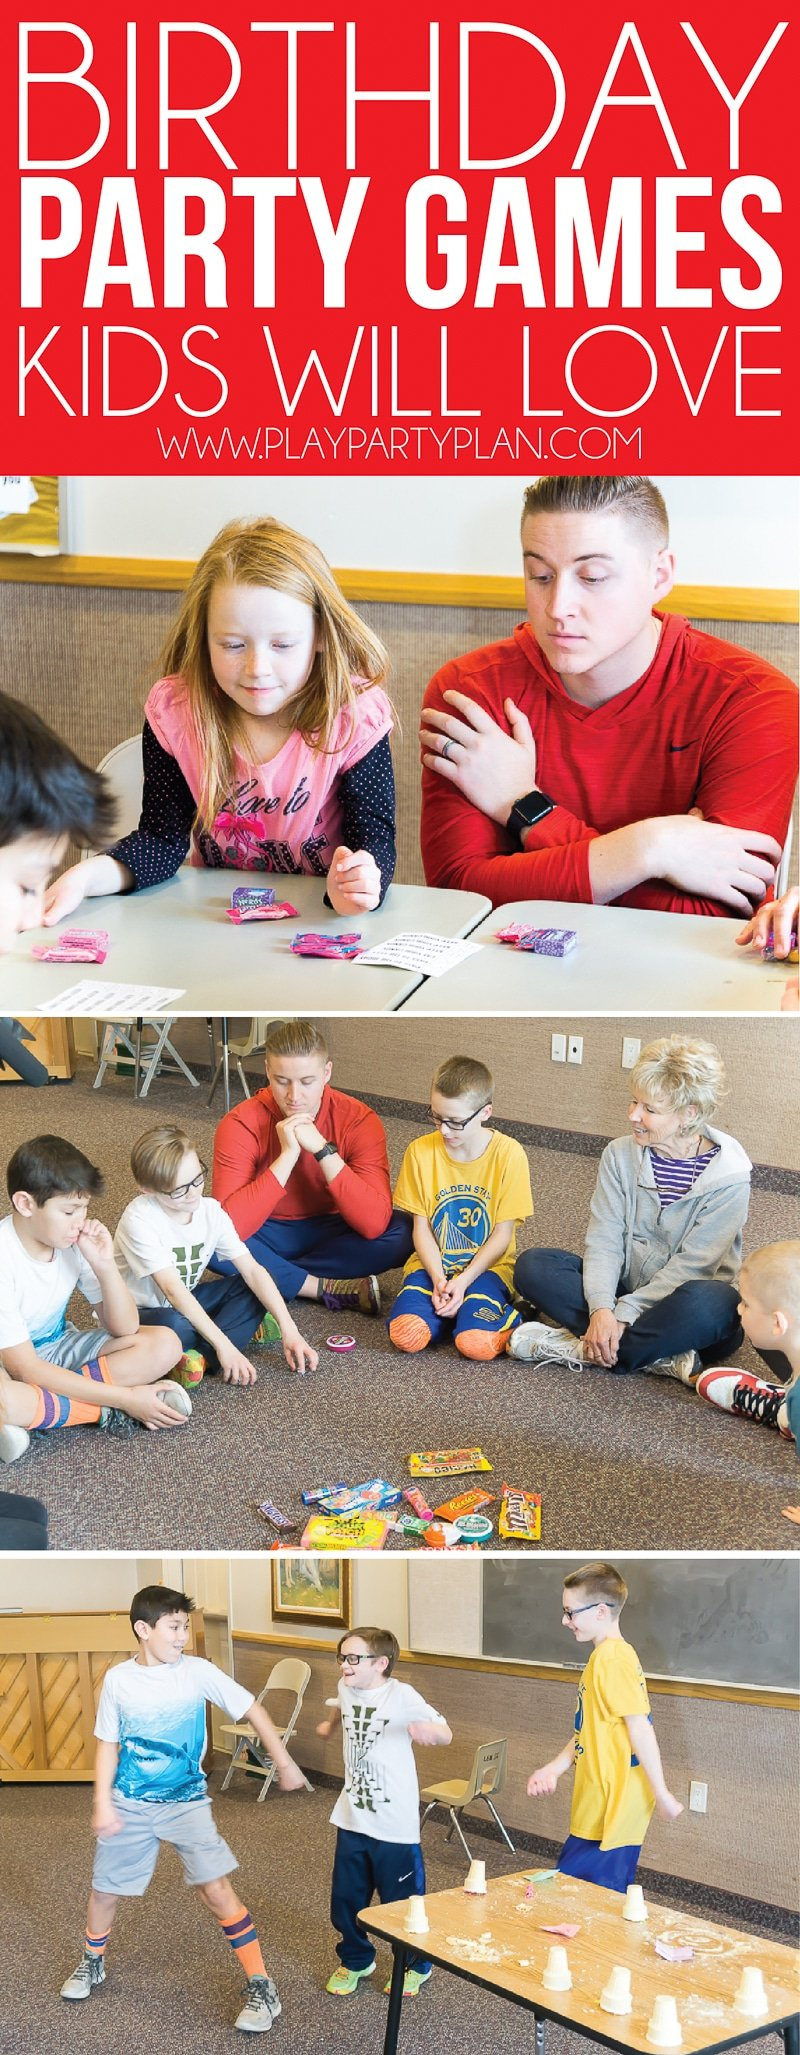 Fun birthday party games for kids, for teens, and even for adults! You can play these indoor or outdoor and unlike unicorn games, these games for boys or for girls!